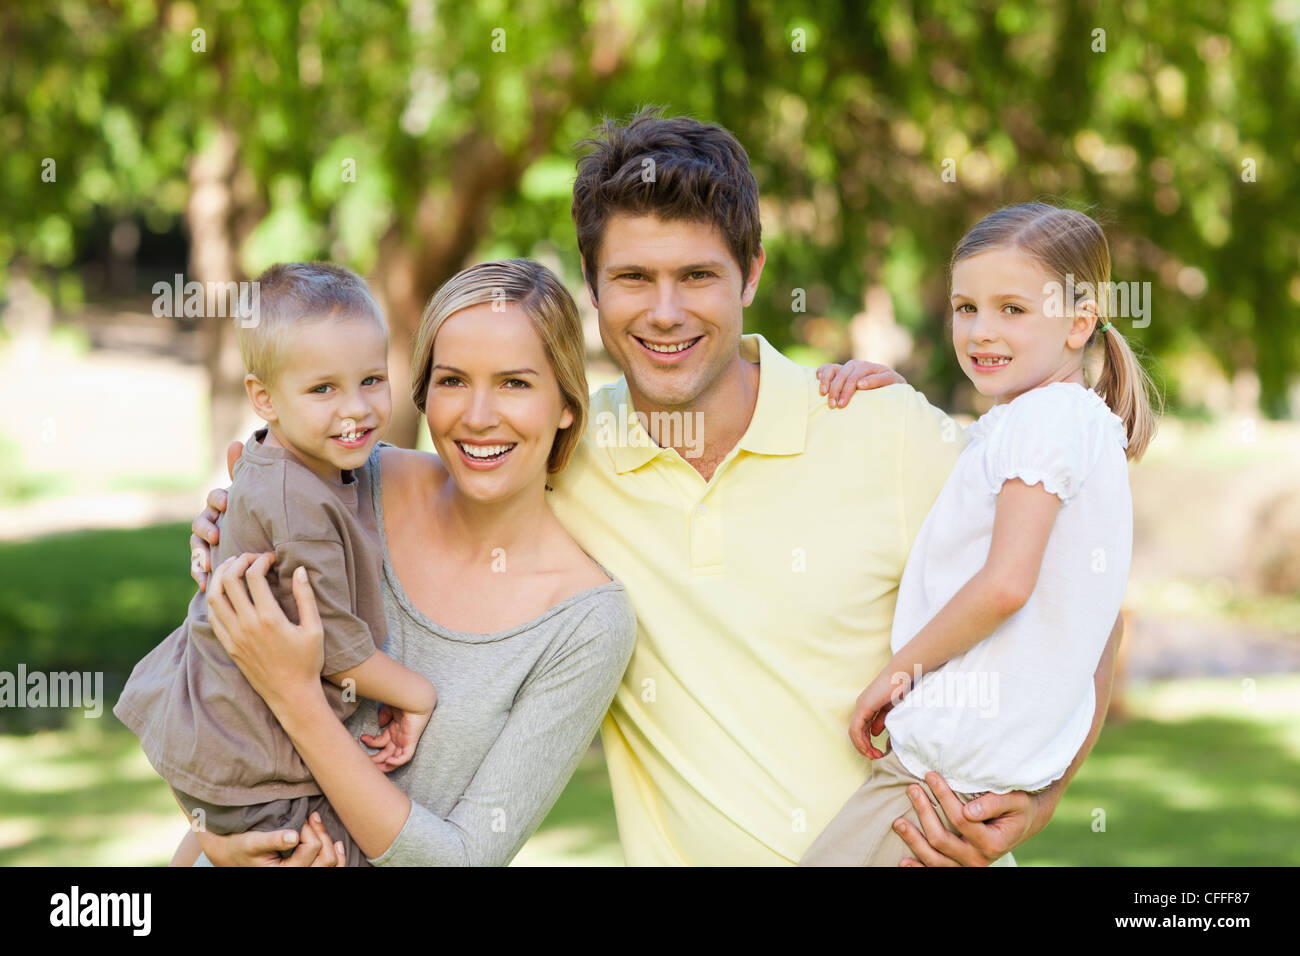 Two parents in the park carrying their kids - Stock Image